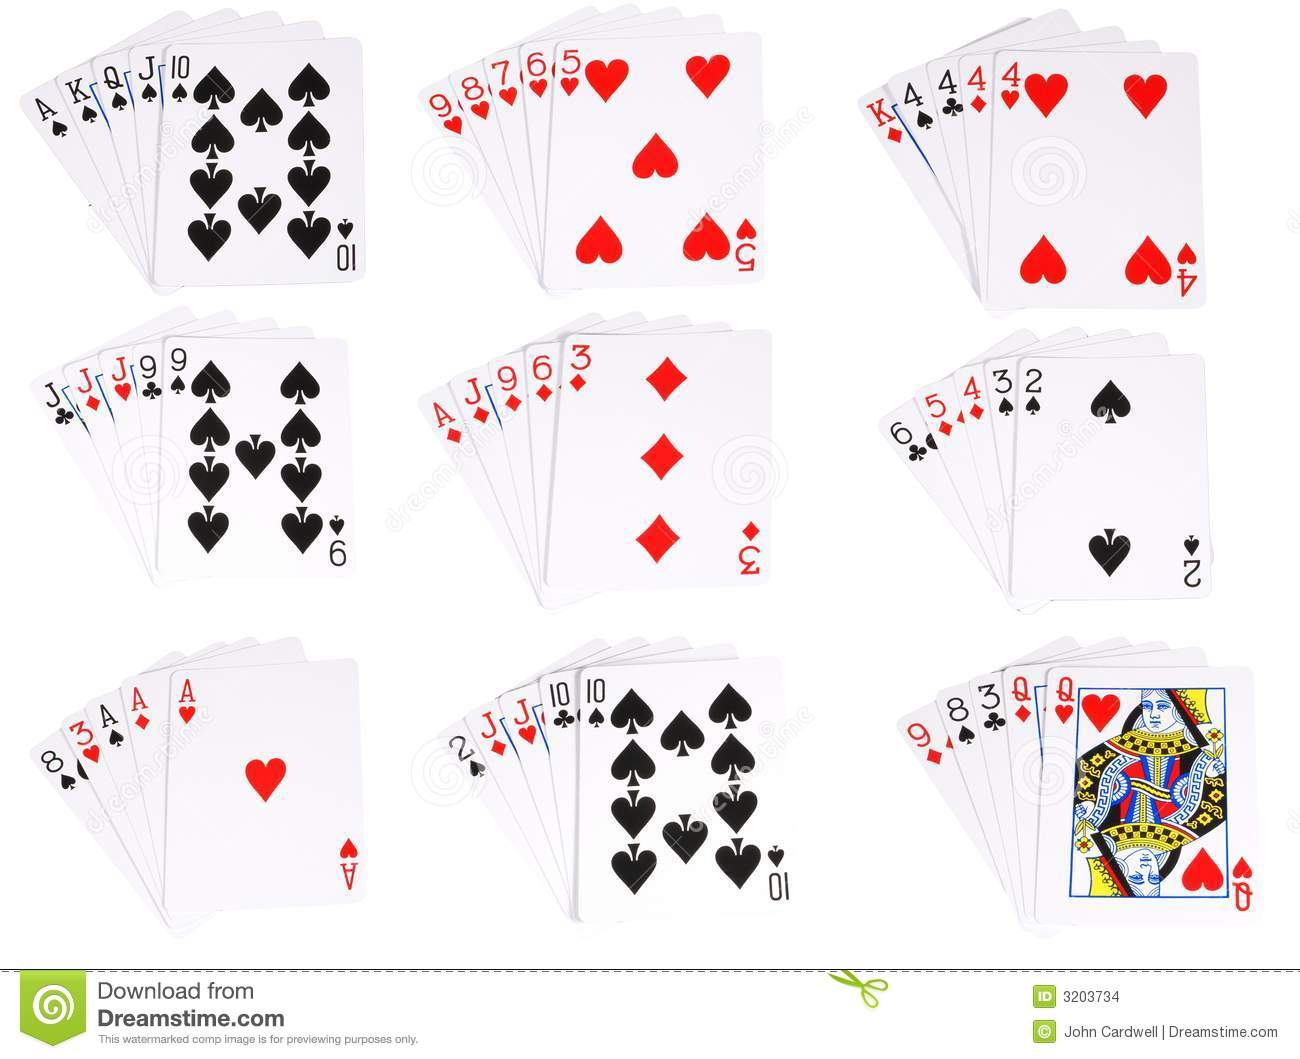 3 card poker hands ranking with jokers car